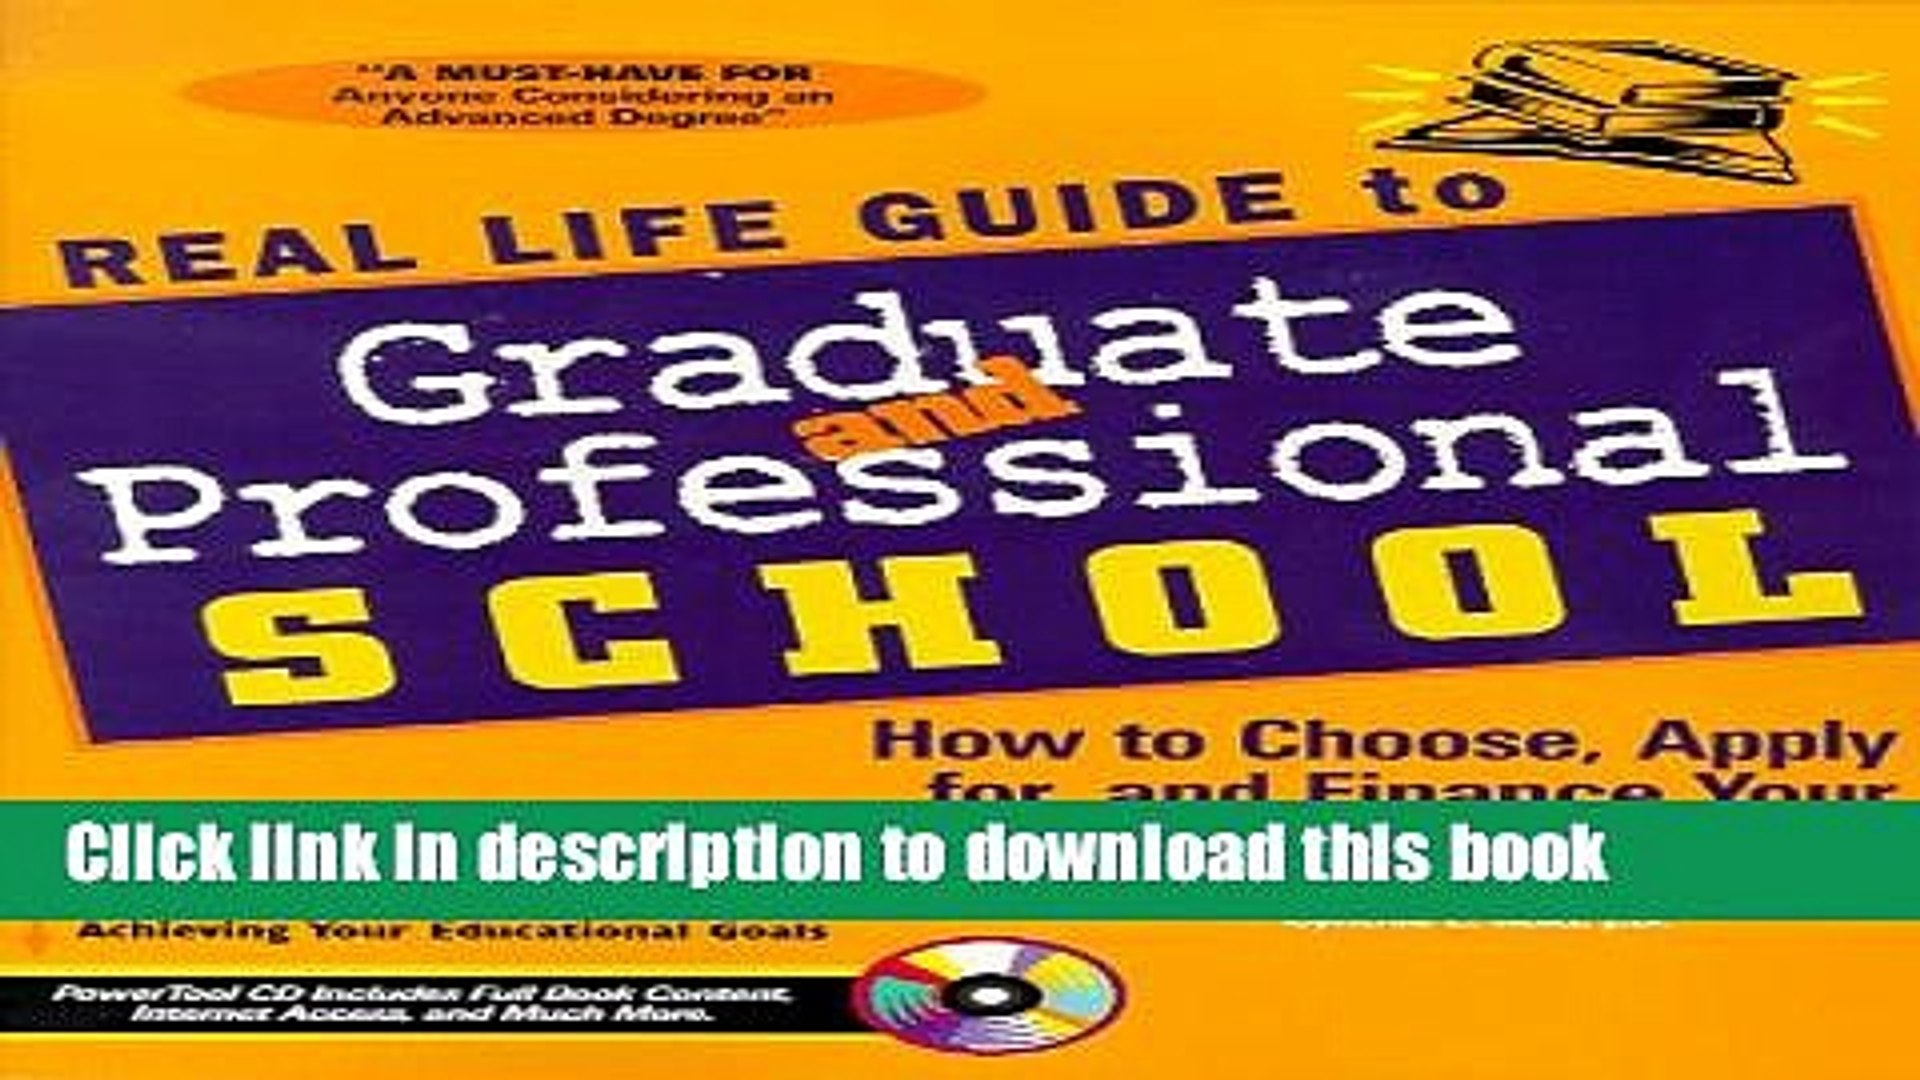 Read Real Life Guide to Graduate   Professional School: How to Choose, Apply for, and Finance Your